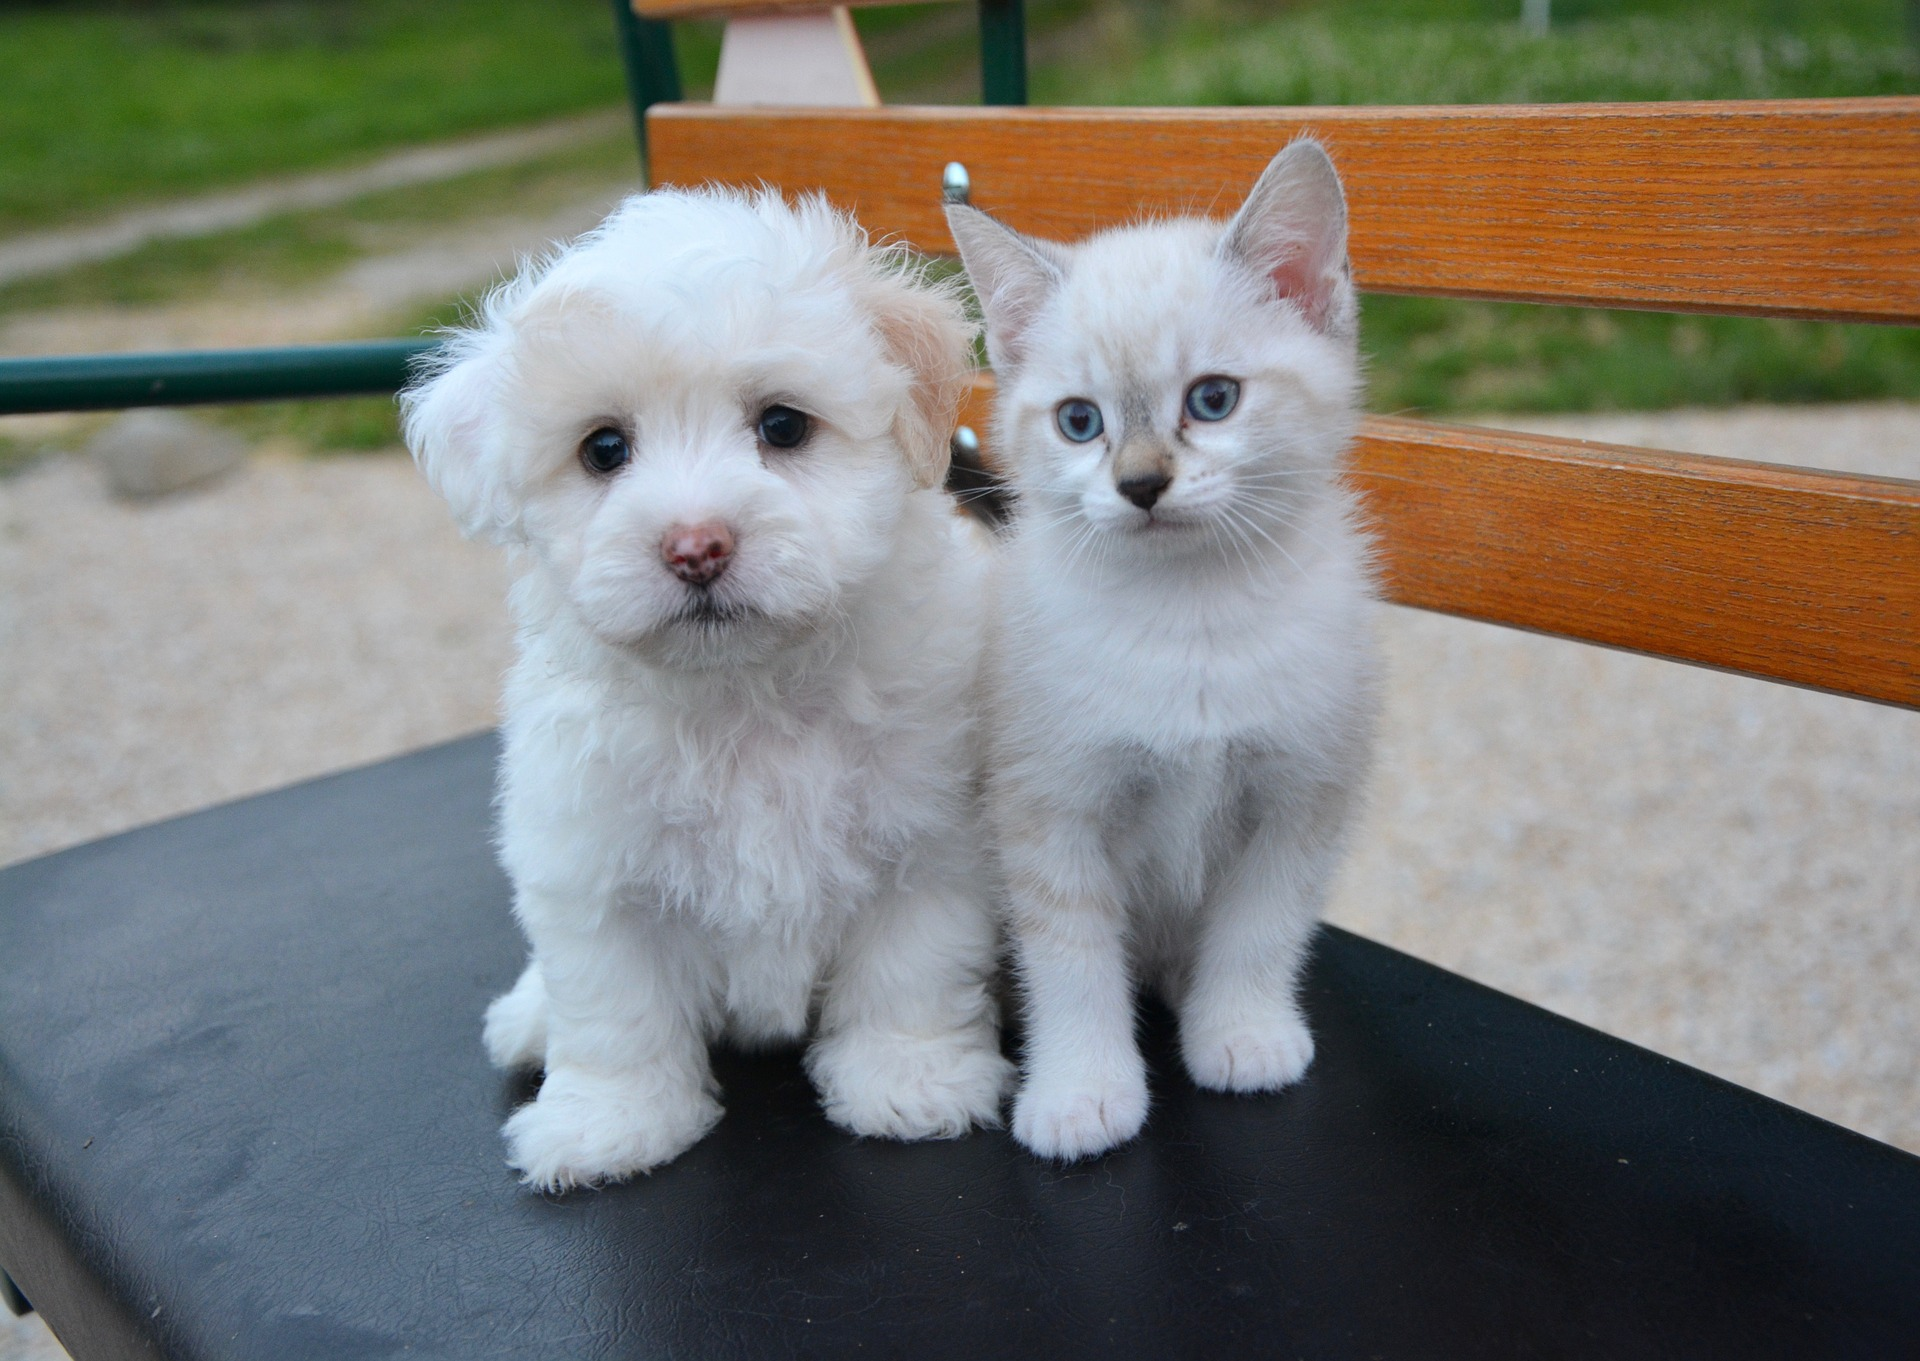 Puppy and kitten on bench. Young animals benefit from early socialization and pet training